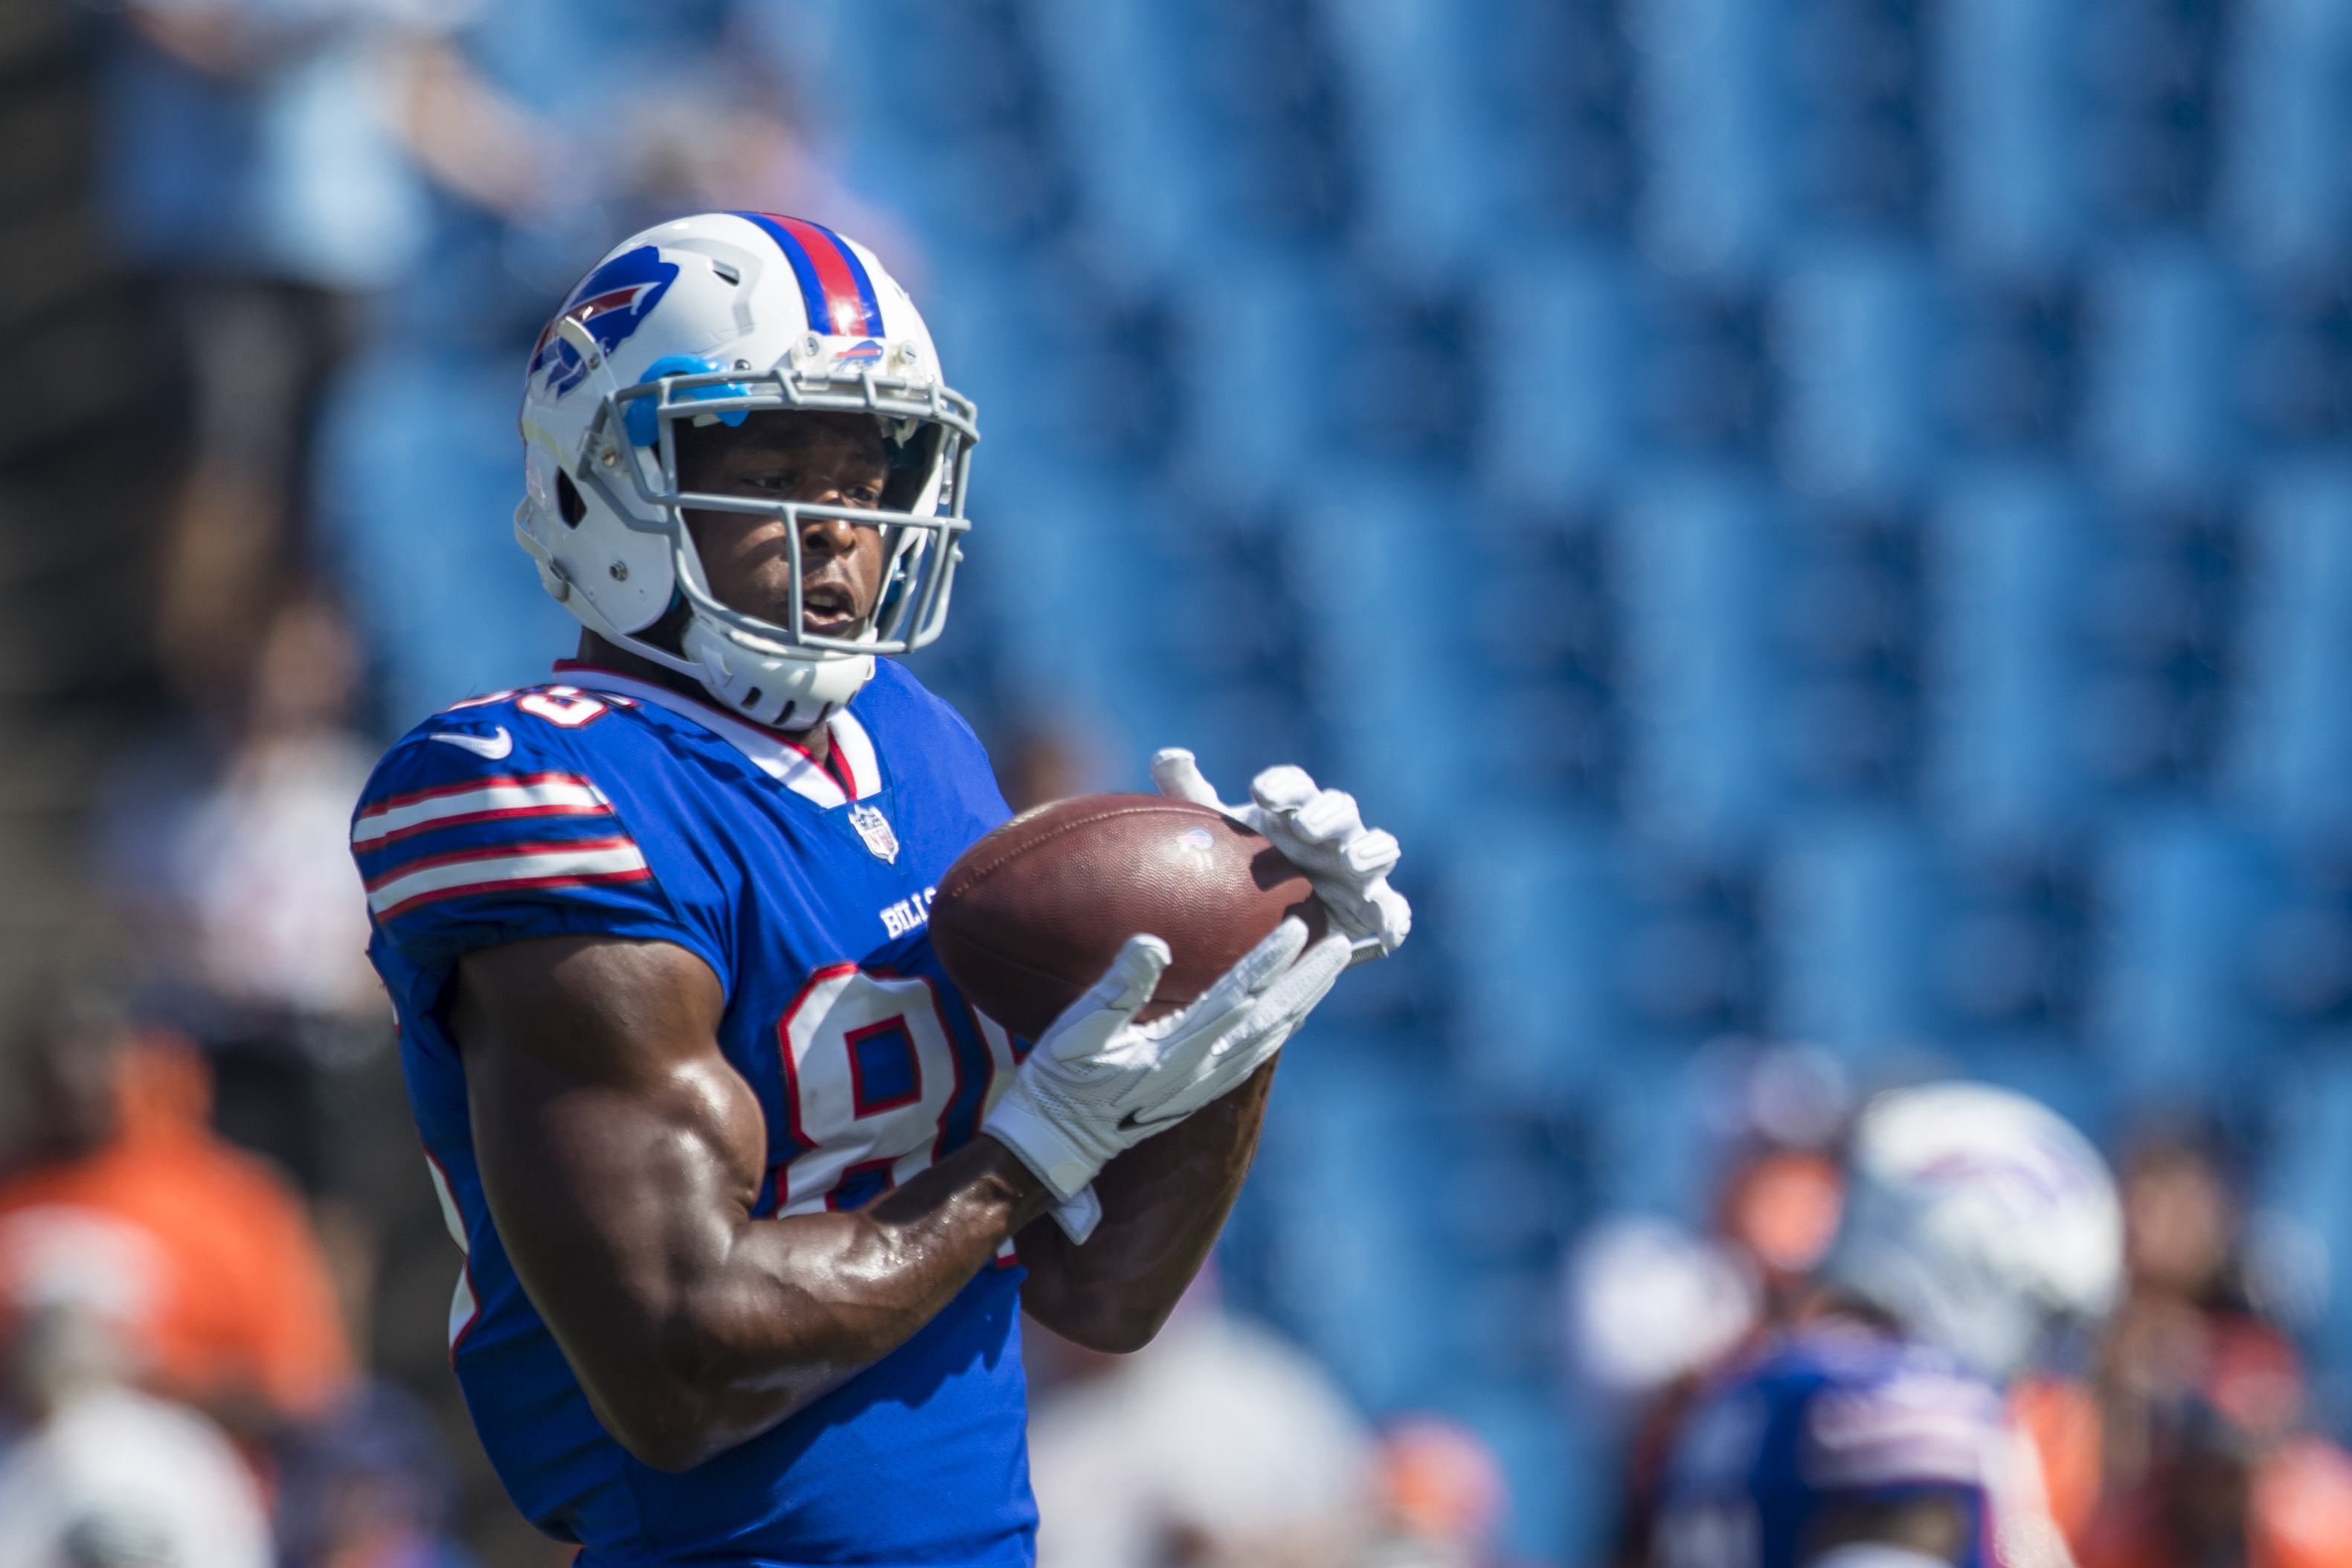 Week 4 fantasy football waiver wire pickups